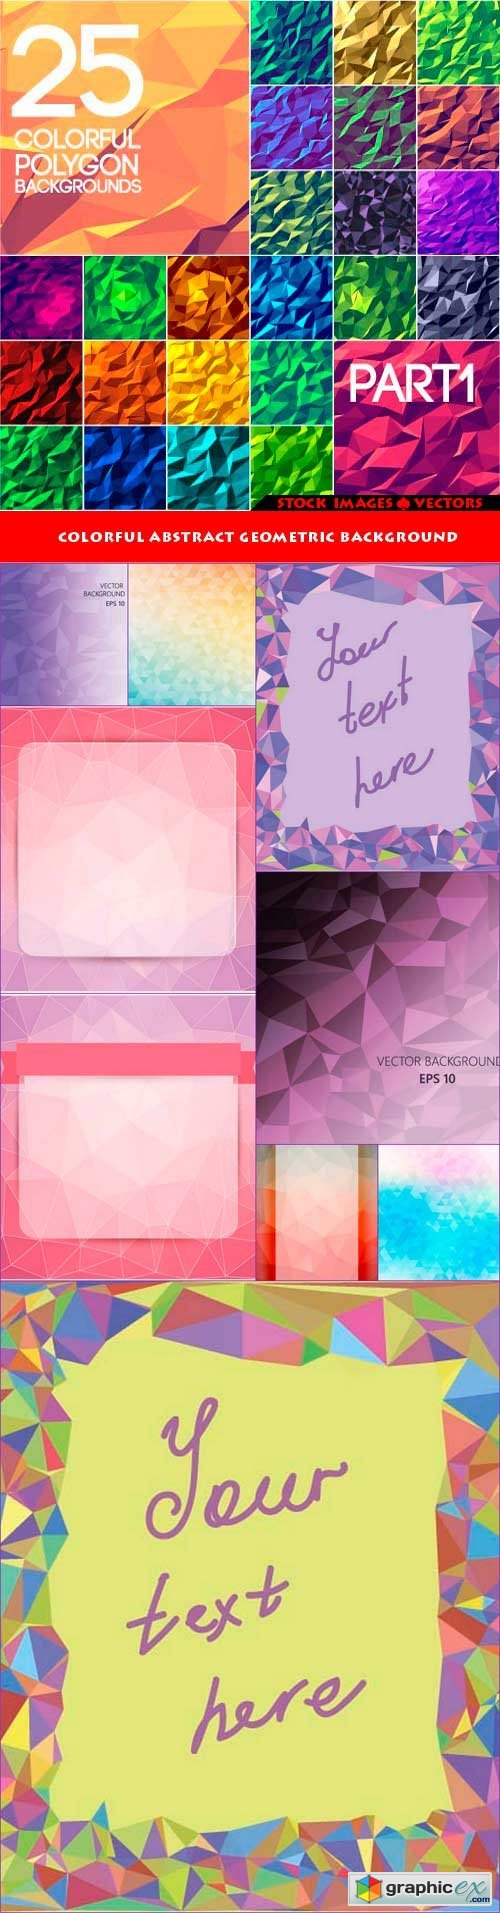 Colorful abstract geometric background 10x EPS